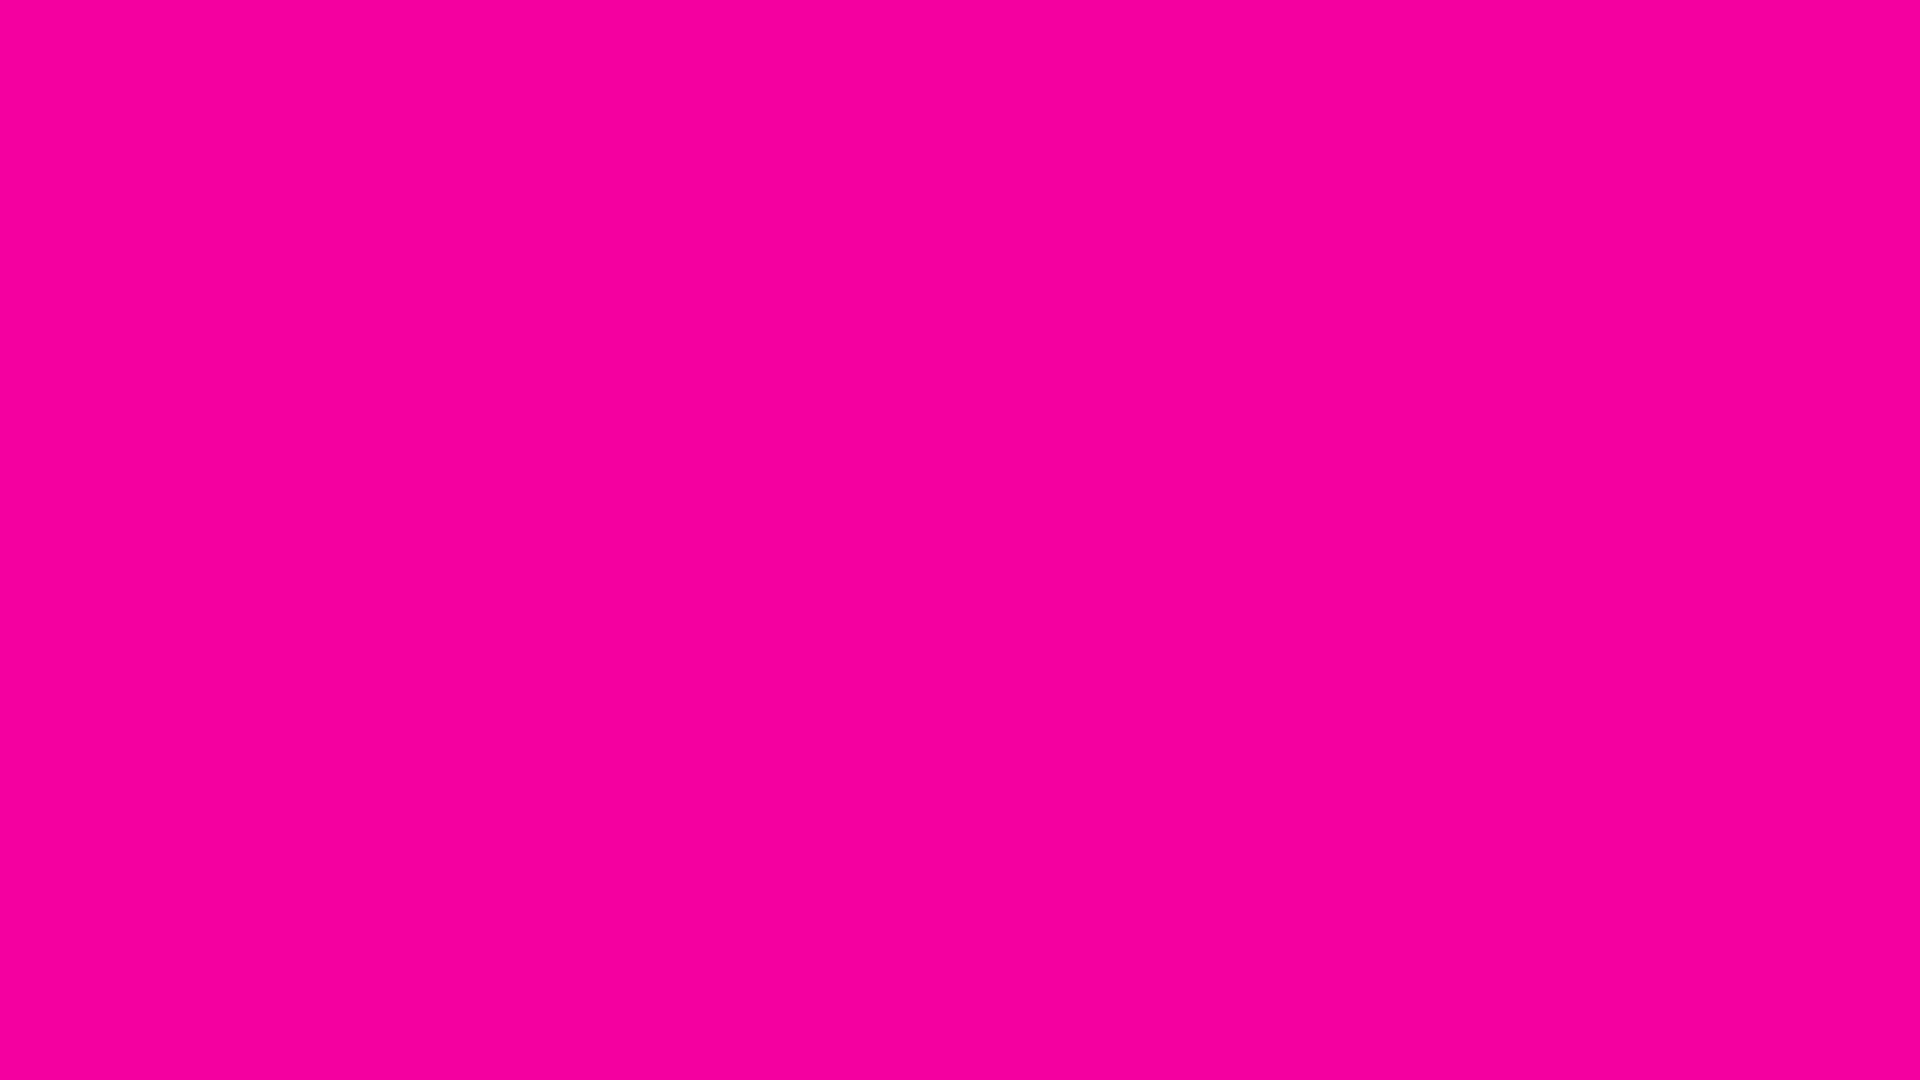 1920x1080 Hollywood cerise solid color wallpaper